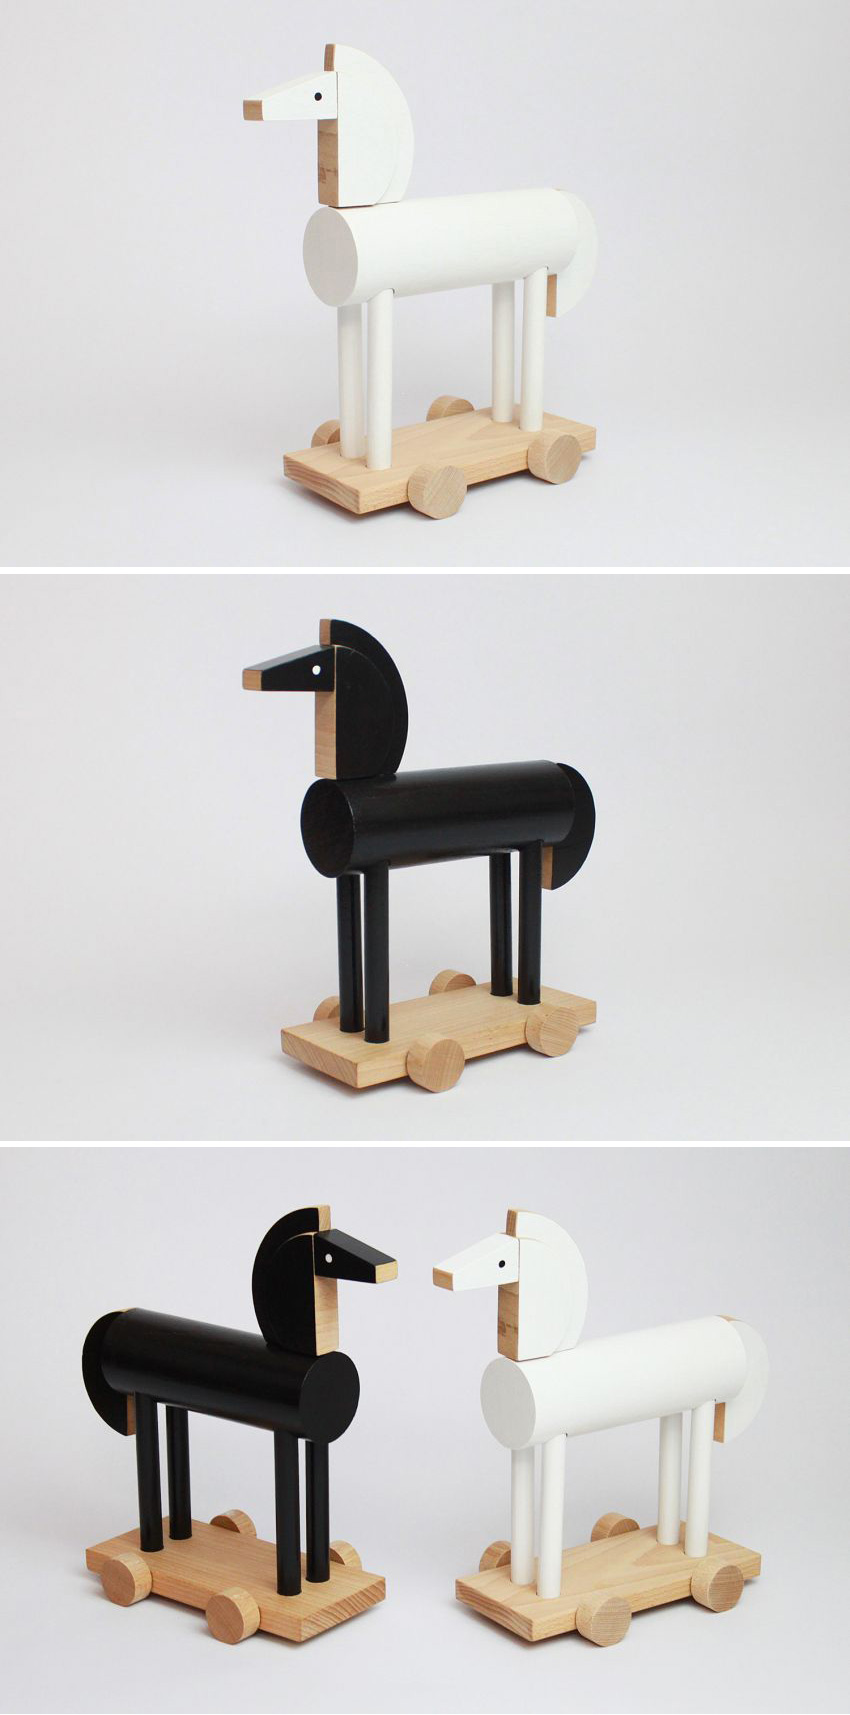 Ortus The Wooden Horse by Kutulu - Contemporary Czech Toy Design, Wooden animal toy